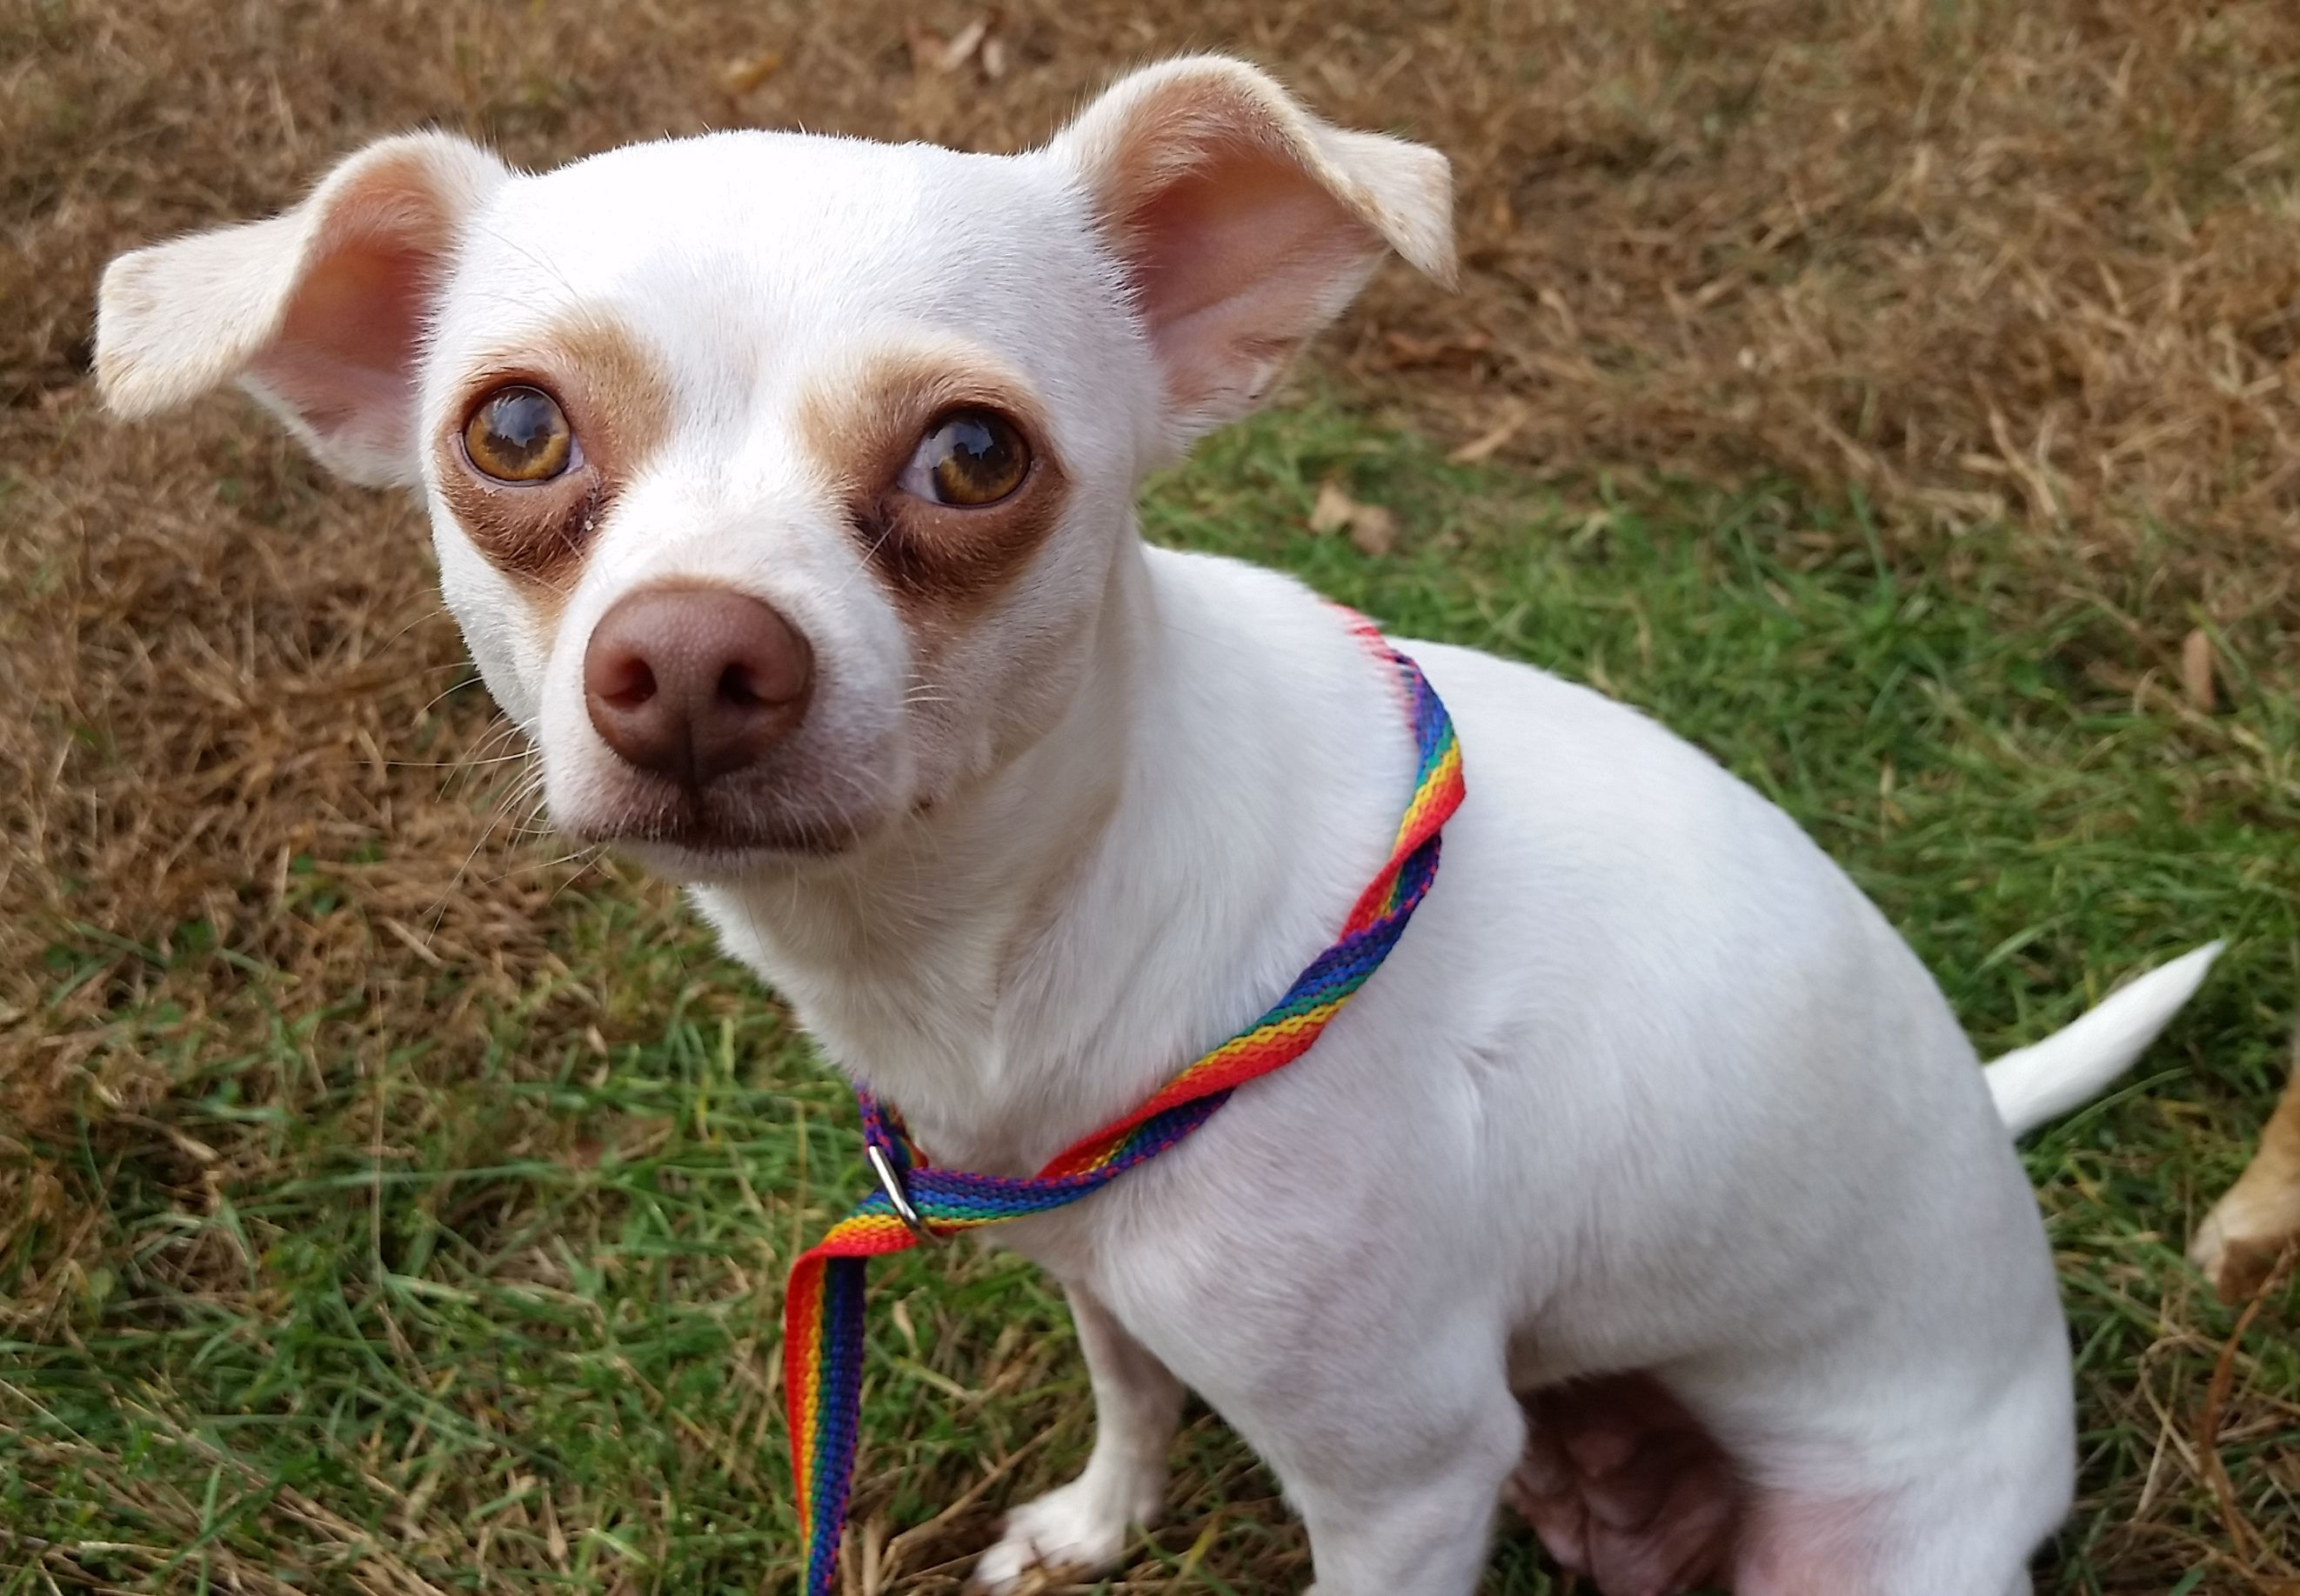 Chihuahua dog for Adoption in Guilford, CT. ADN-418884 on PuppyFinder.com Gender: Female. Age: Adult